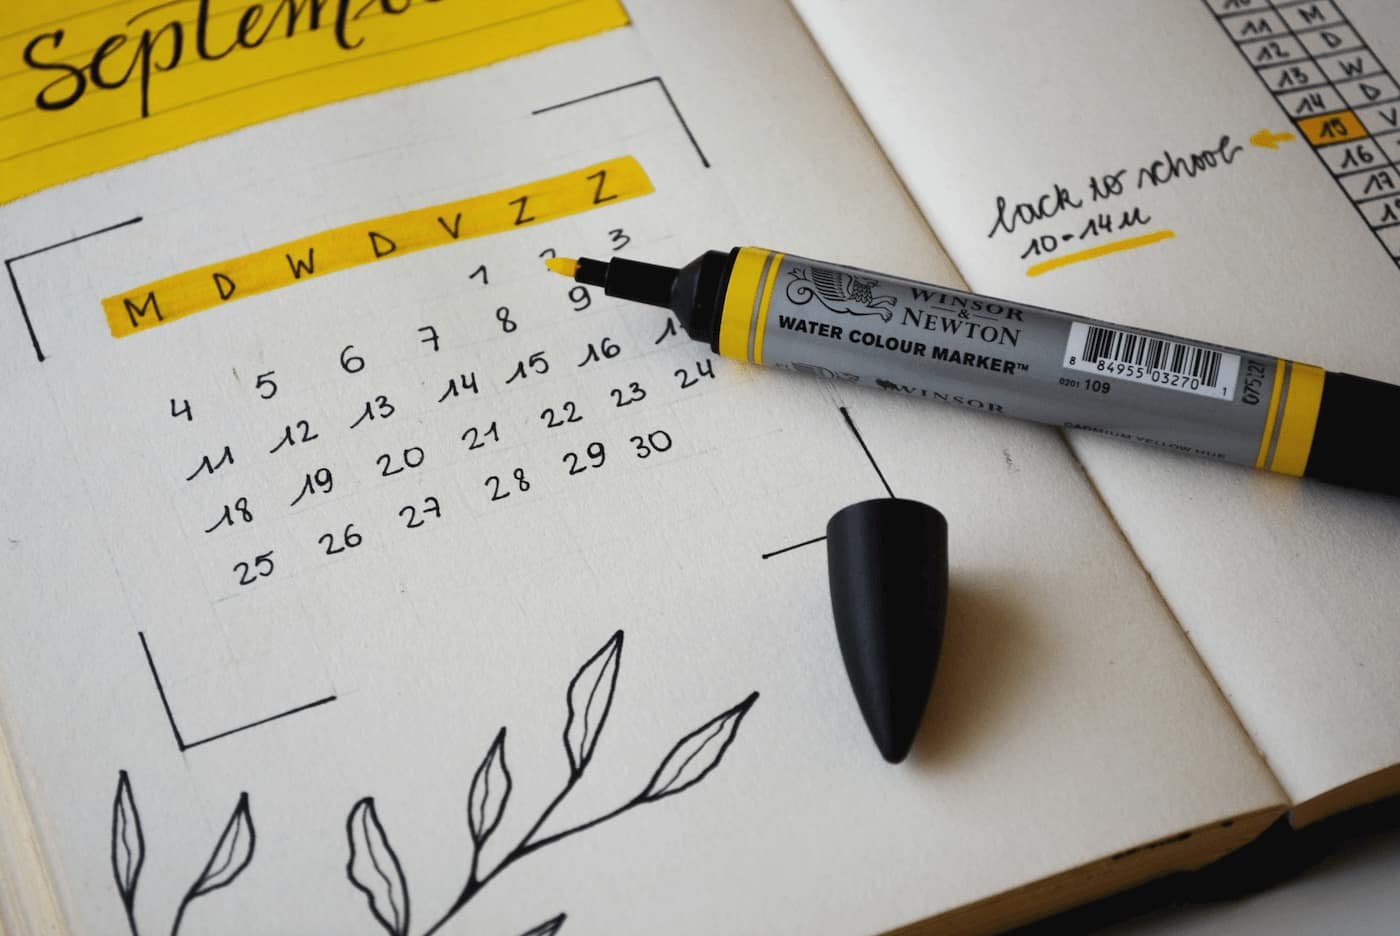 Monthly calculations at rental properties for prorated rent